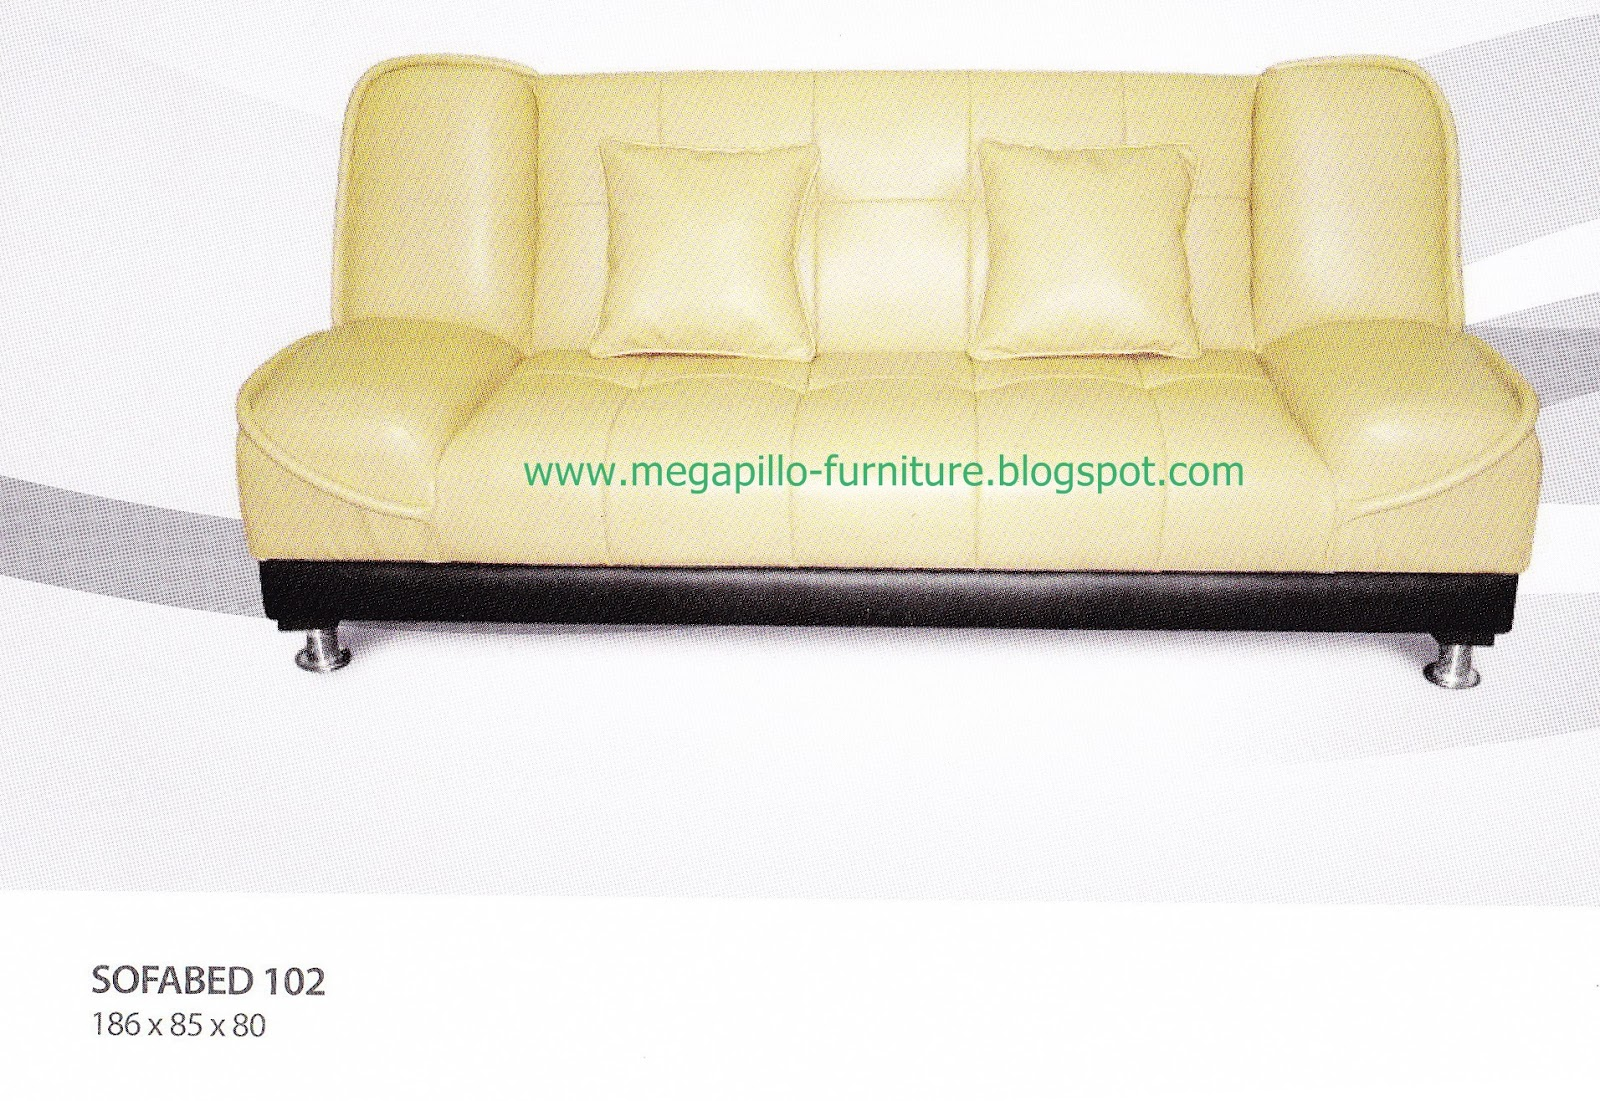 Sofa Set Online Shopping Cleaning Service Cost Megapillo Furniture And Spring Bed Shop Morres